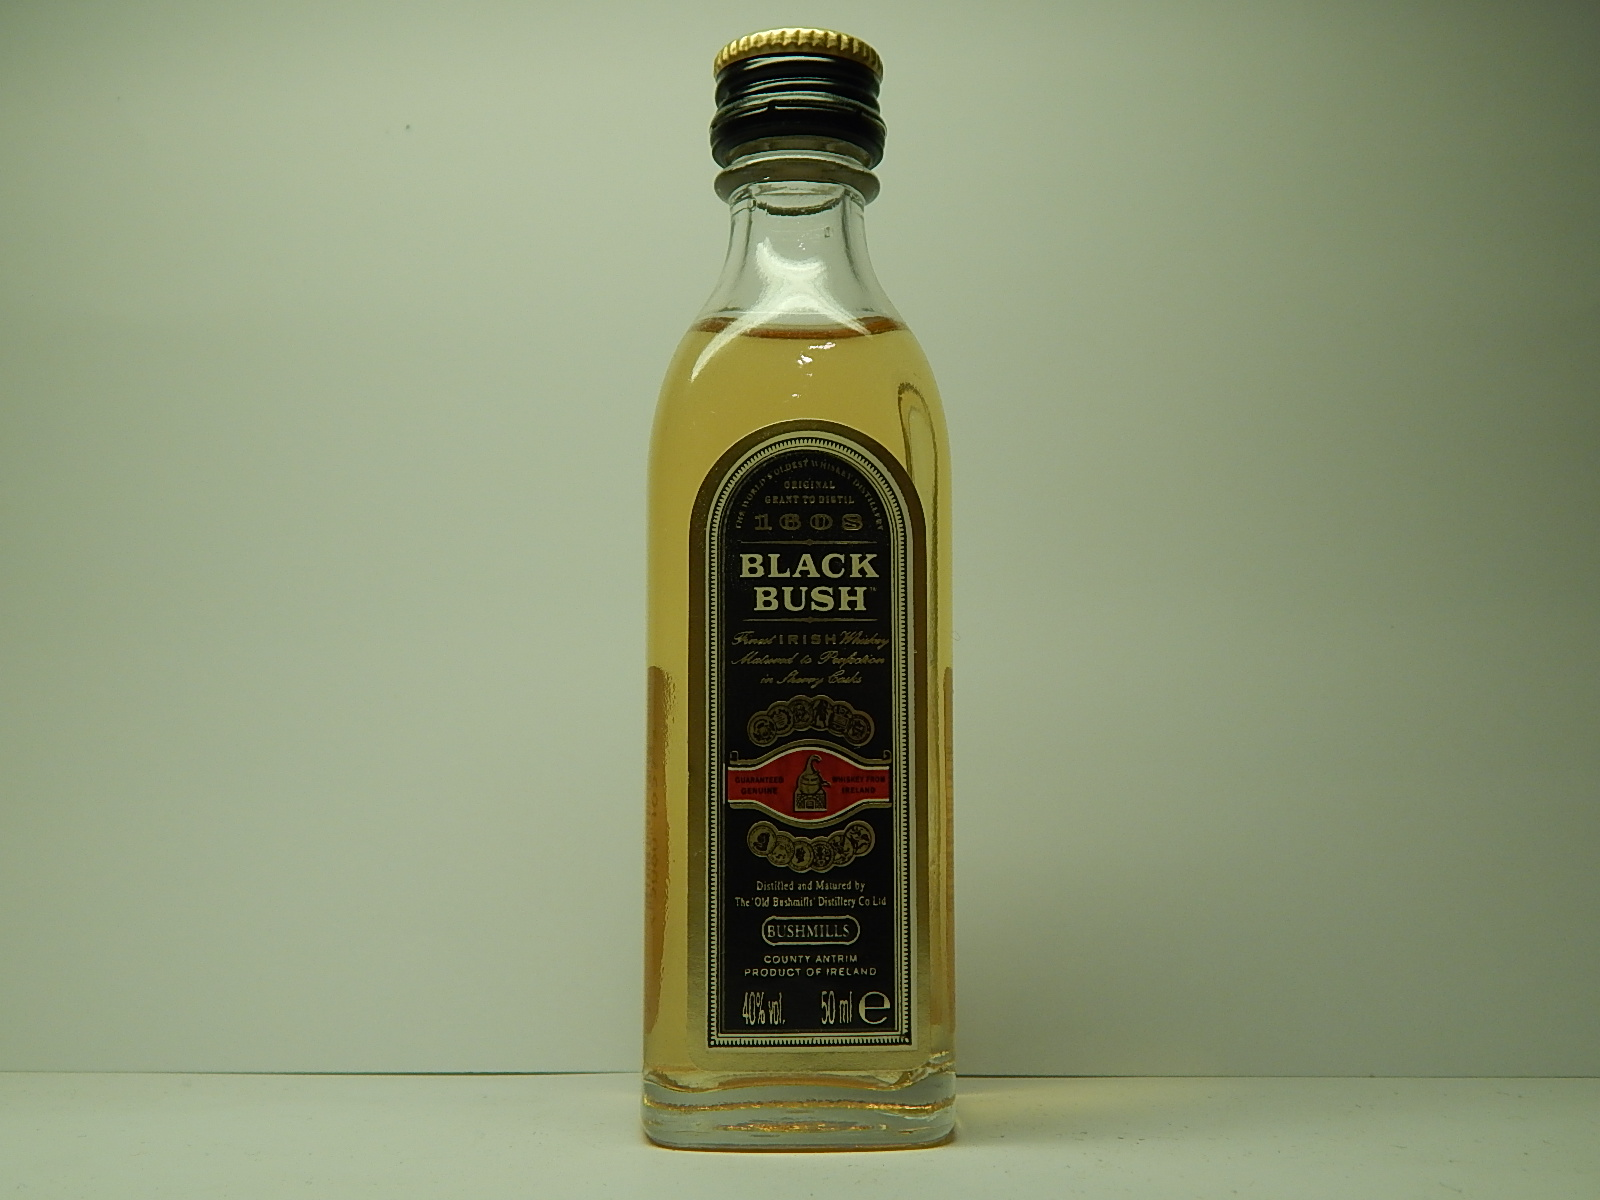 BLACK BUSH Finest Irish Whiskey